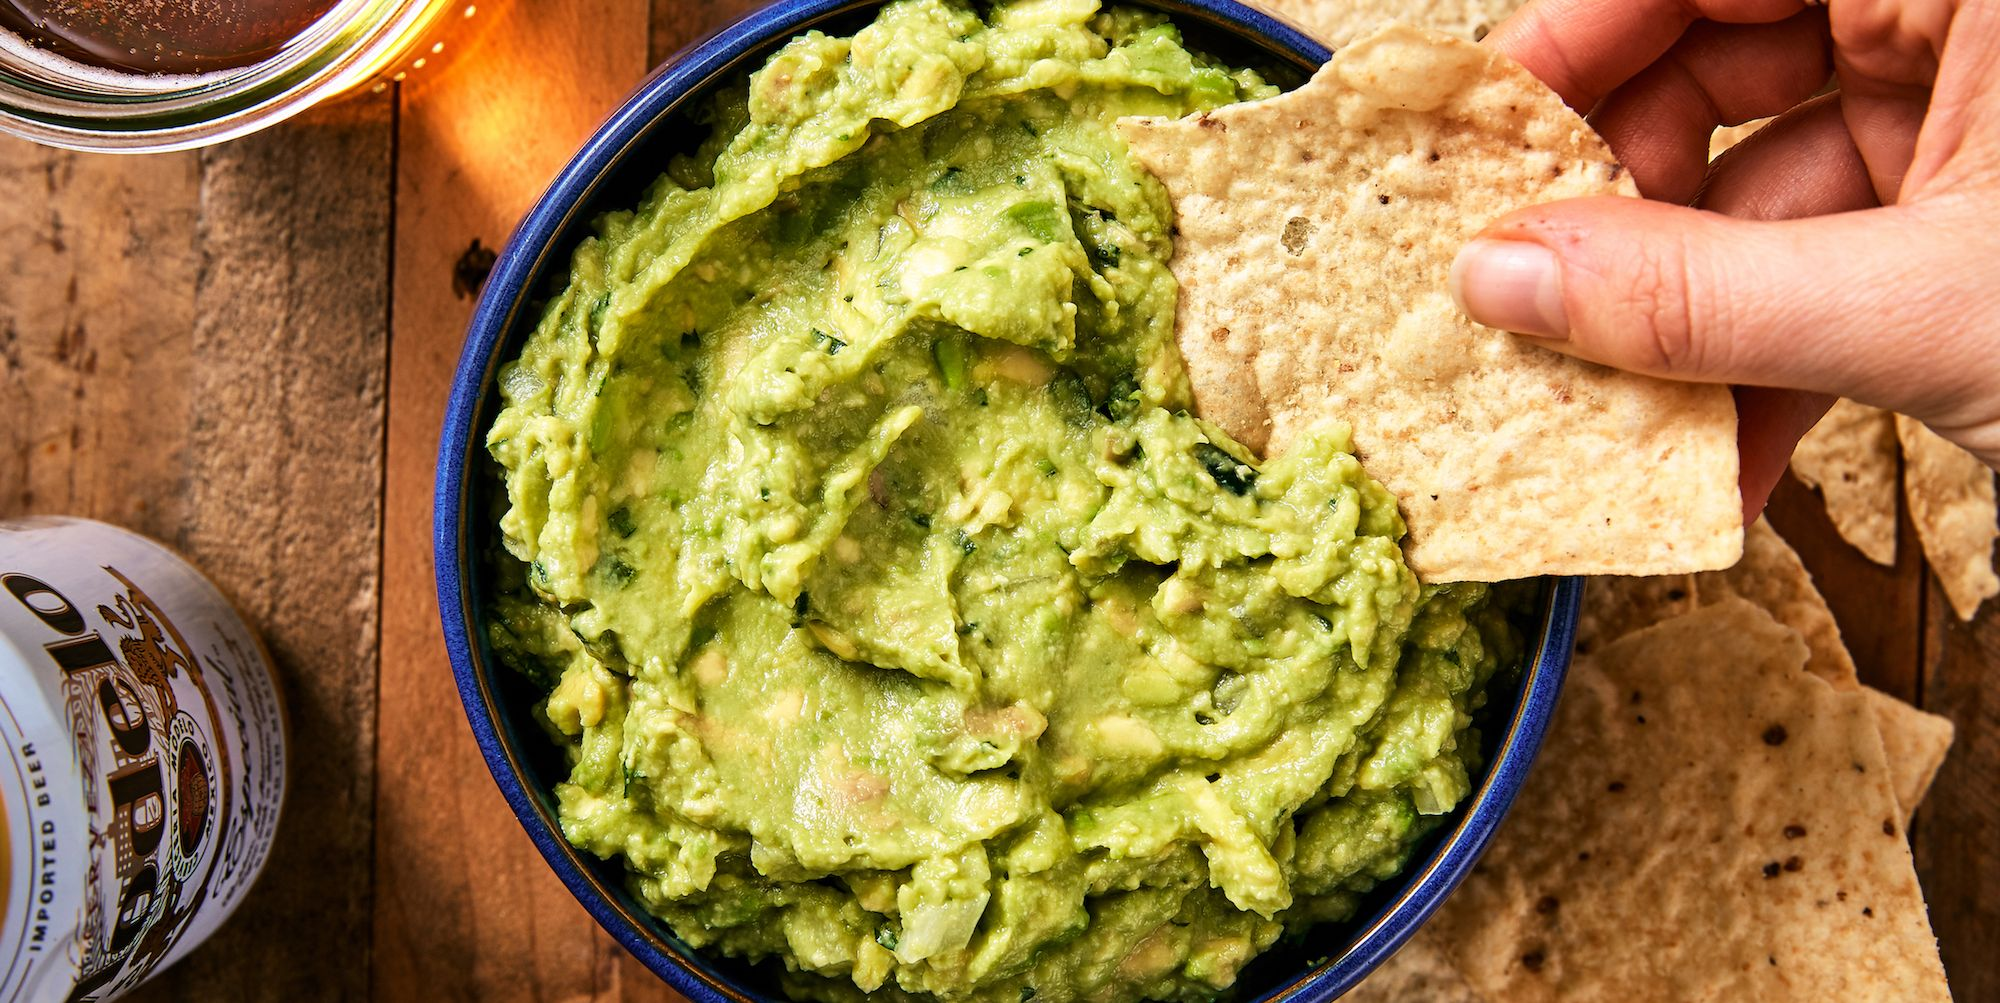 17 Green Foods To Make On St. Patrick's Day